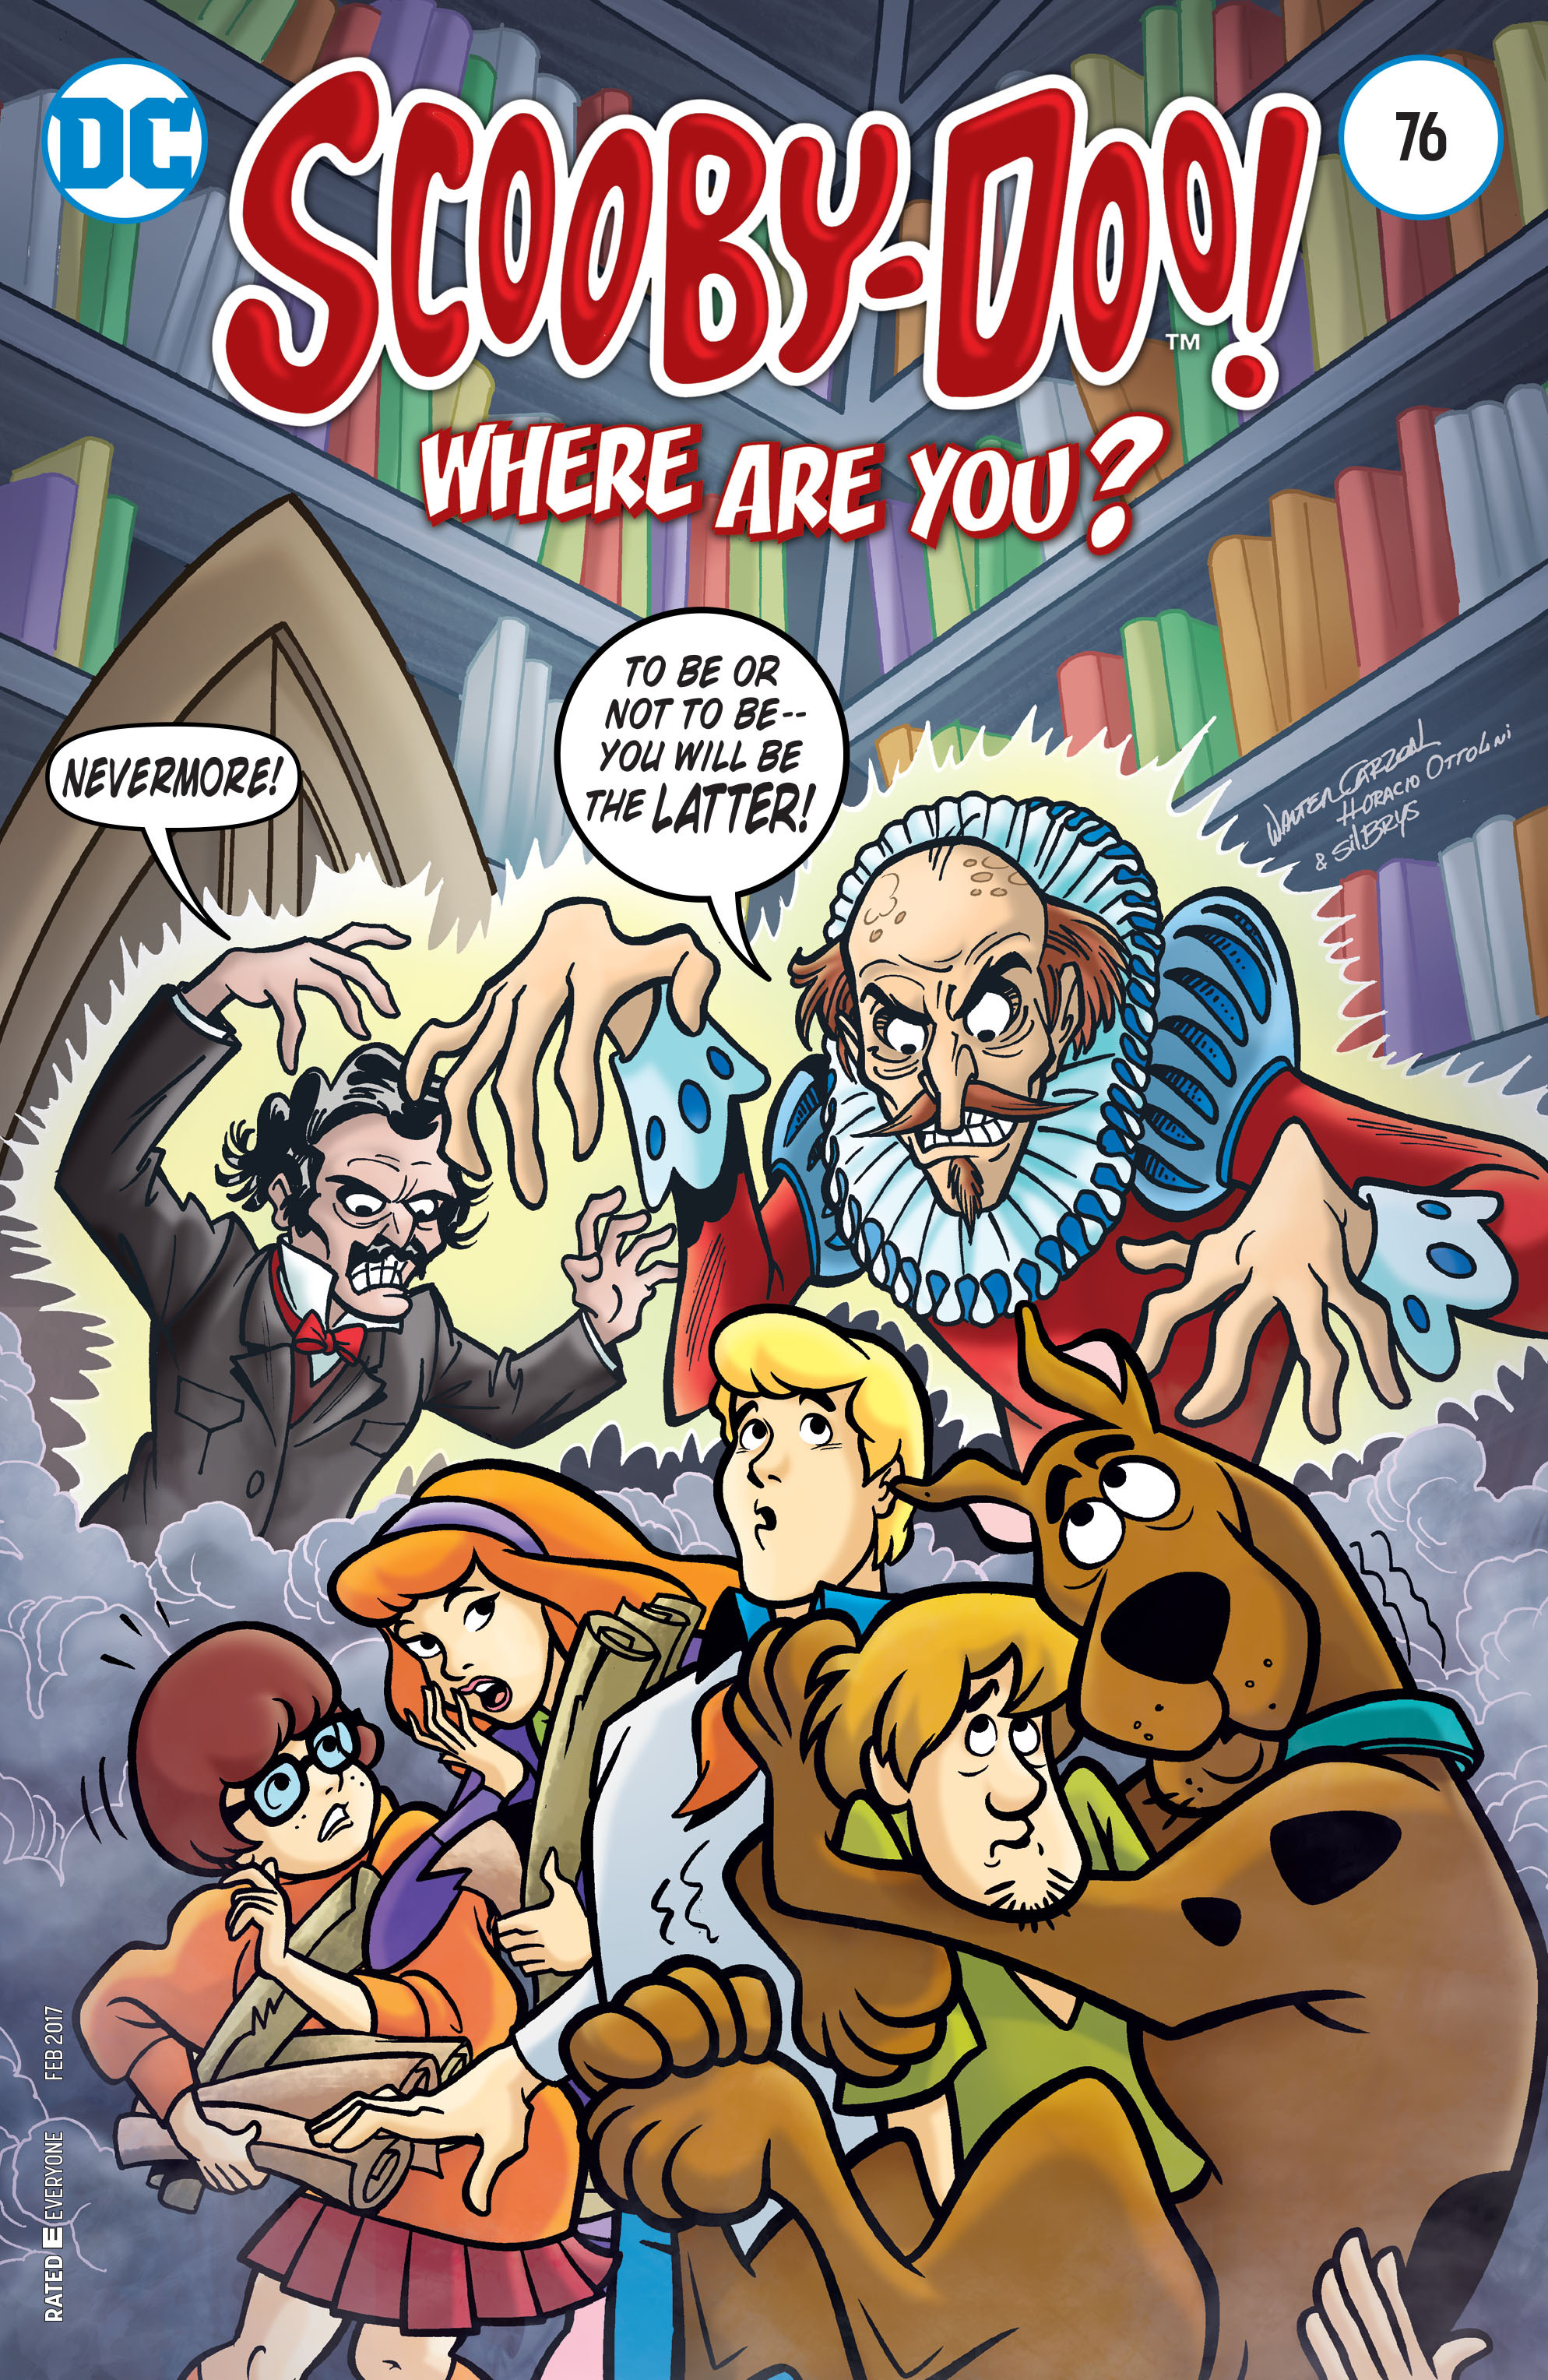 Read online Scooby-Doo: Where Are You? comic -  Issue #76 - 1